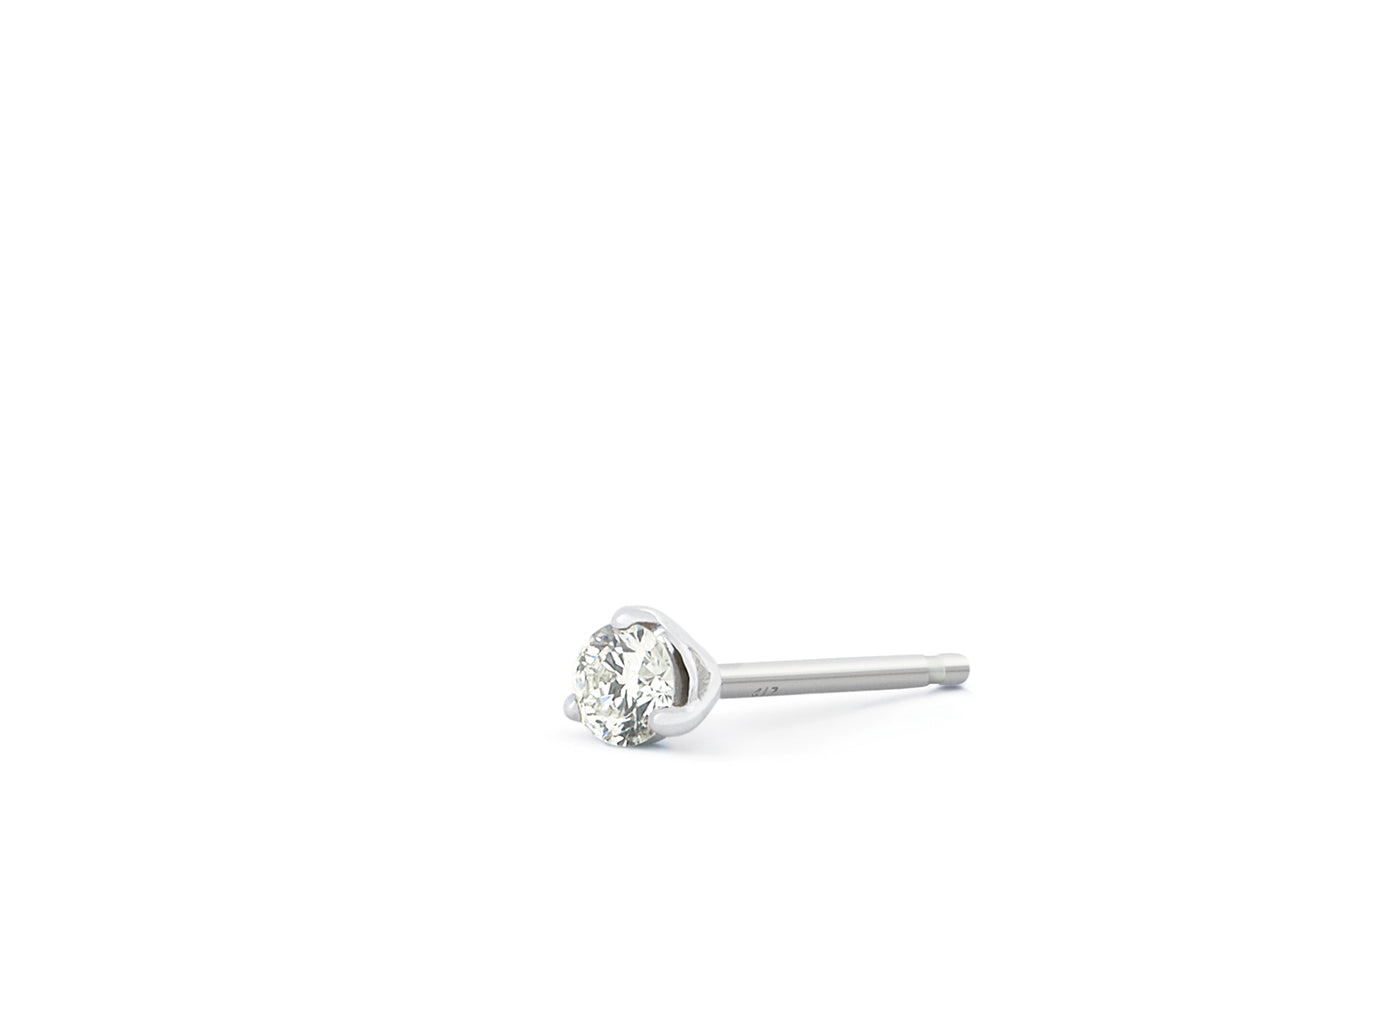 Side view of Solitaire 1/10 carat earring with white diamond